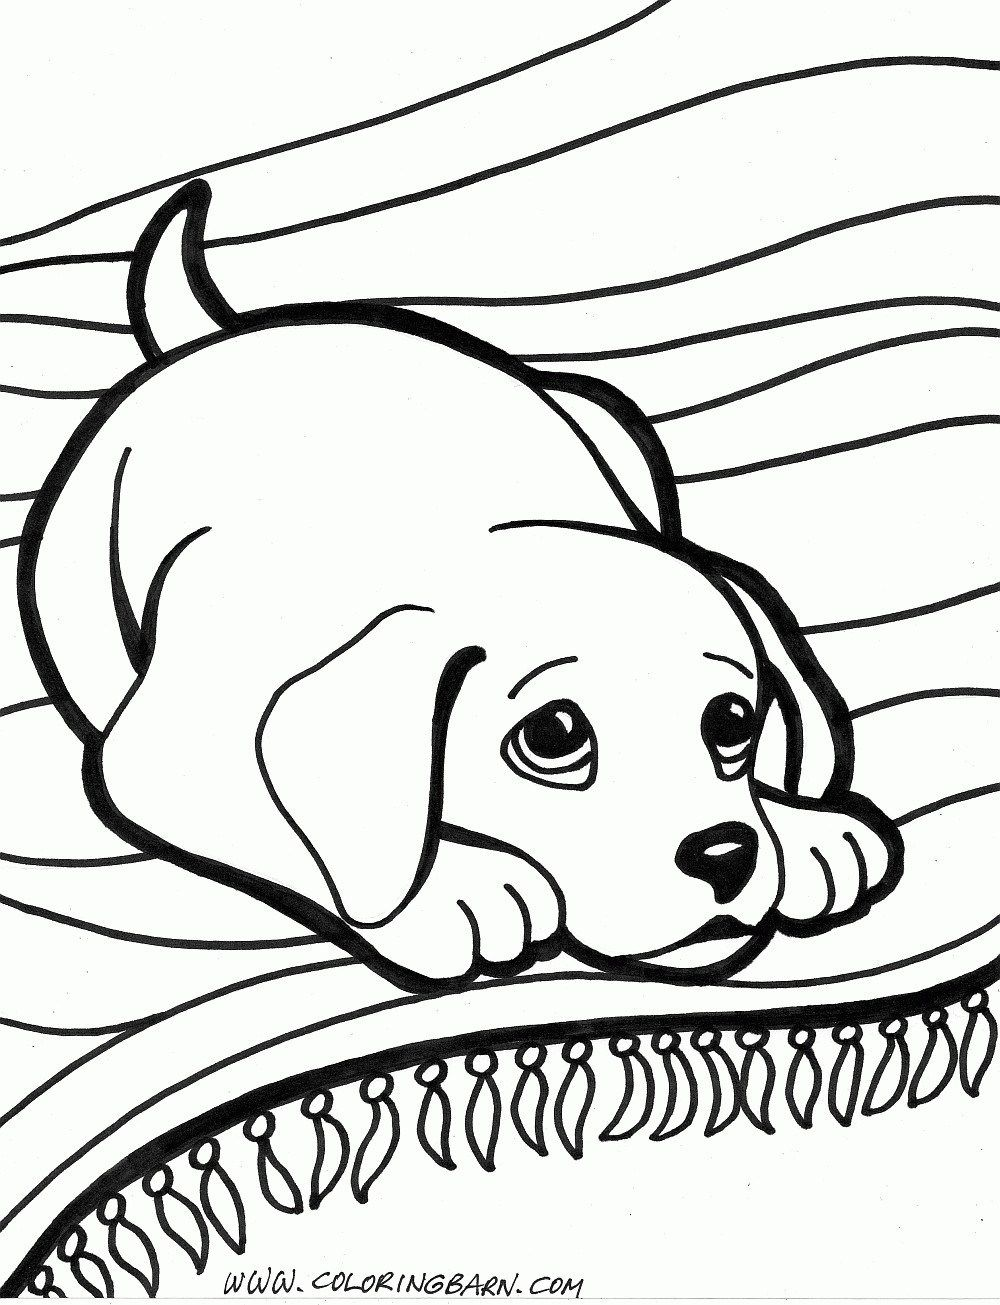 Puppy Coloring Pages Puppy Coloring Pages Dog Coloring Pages Free